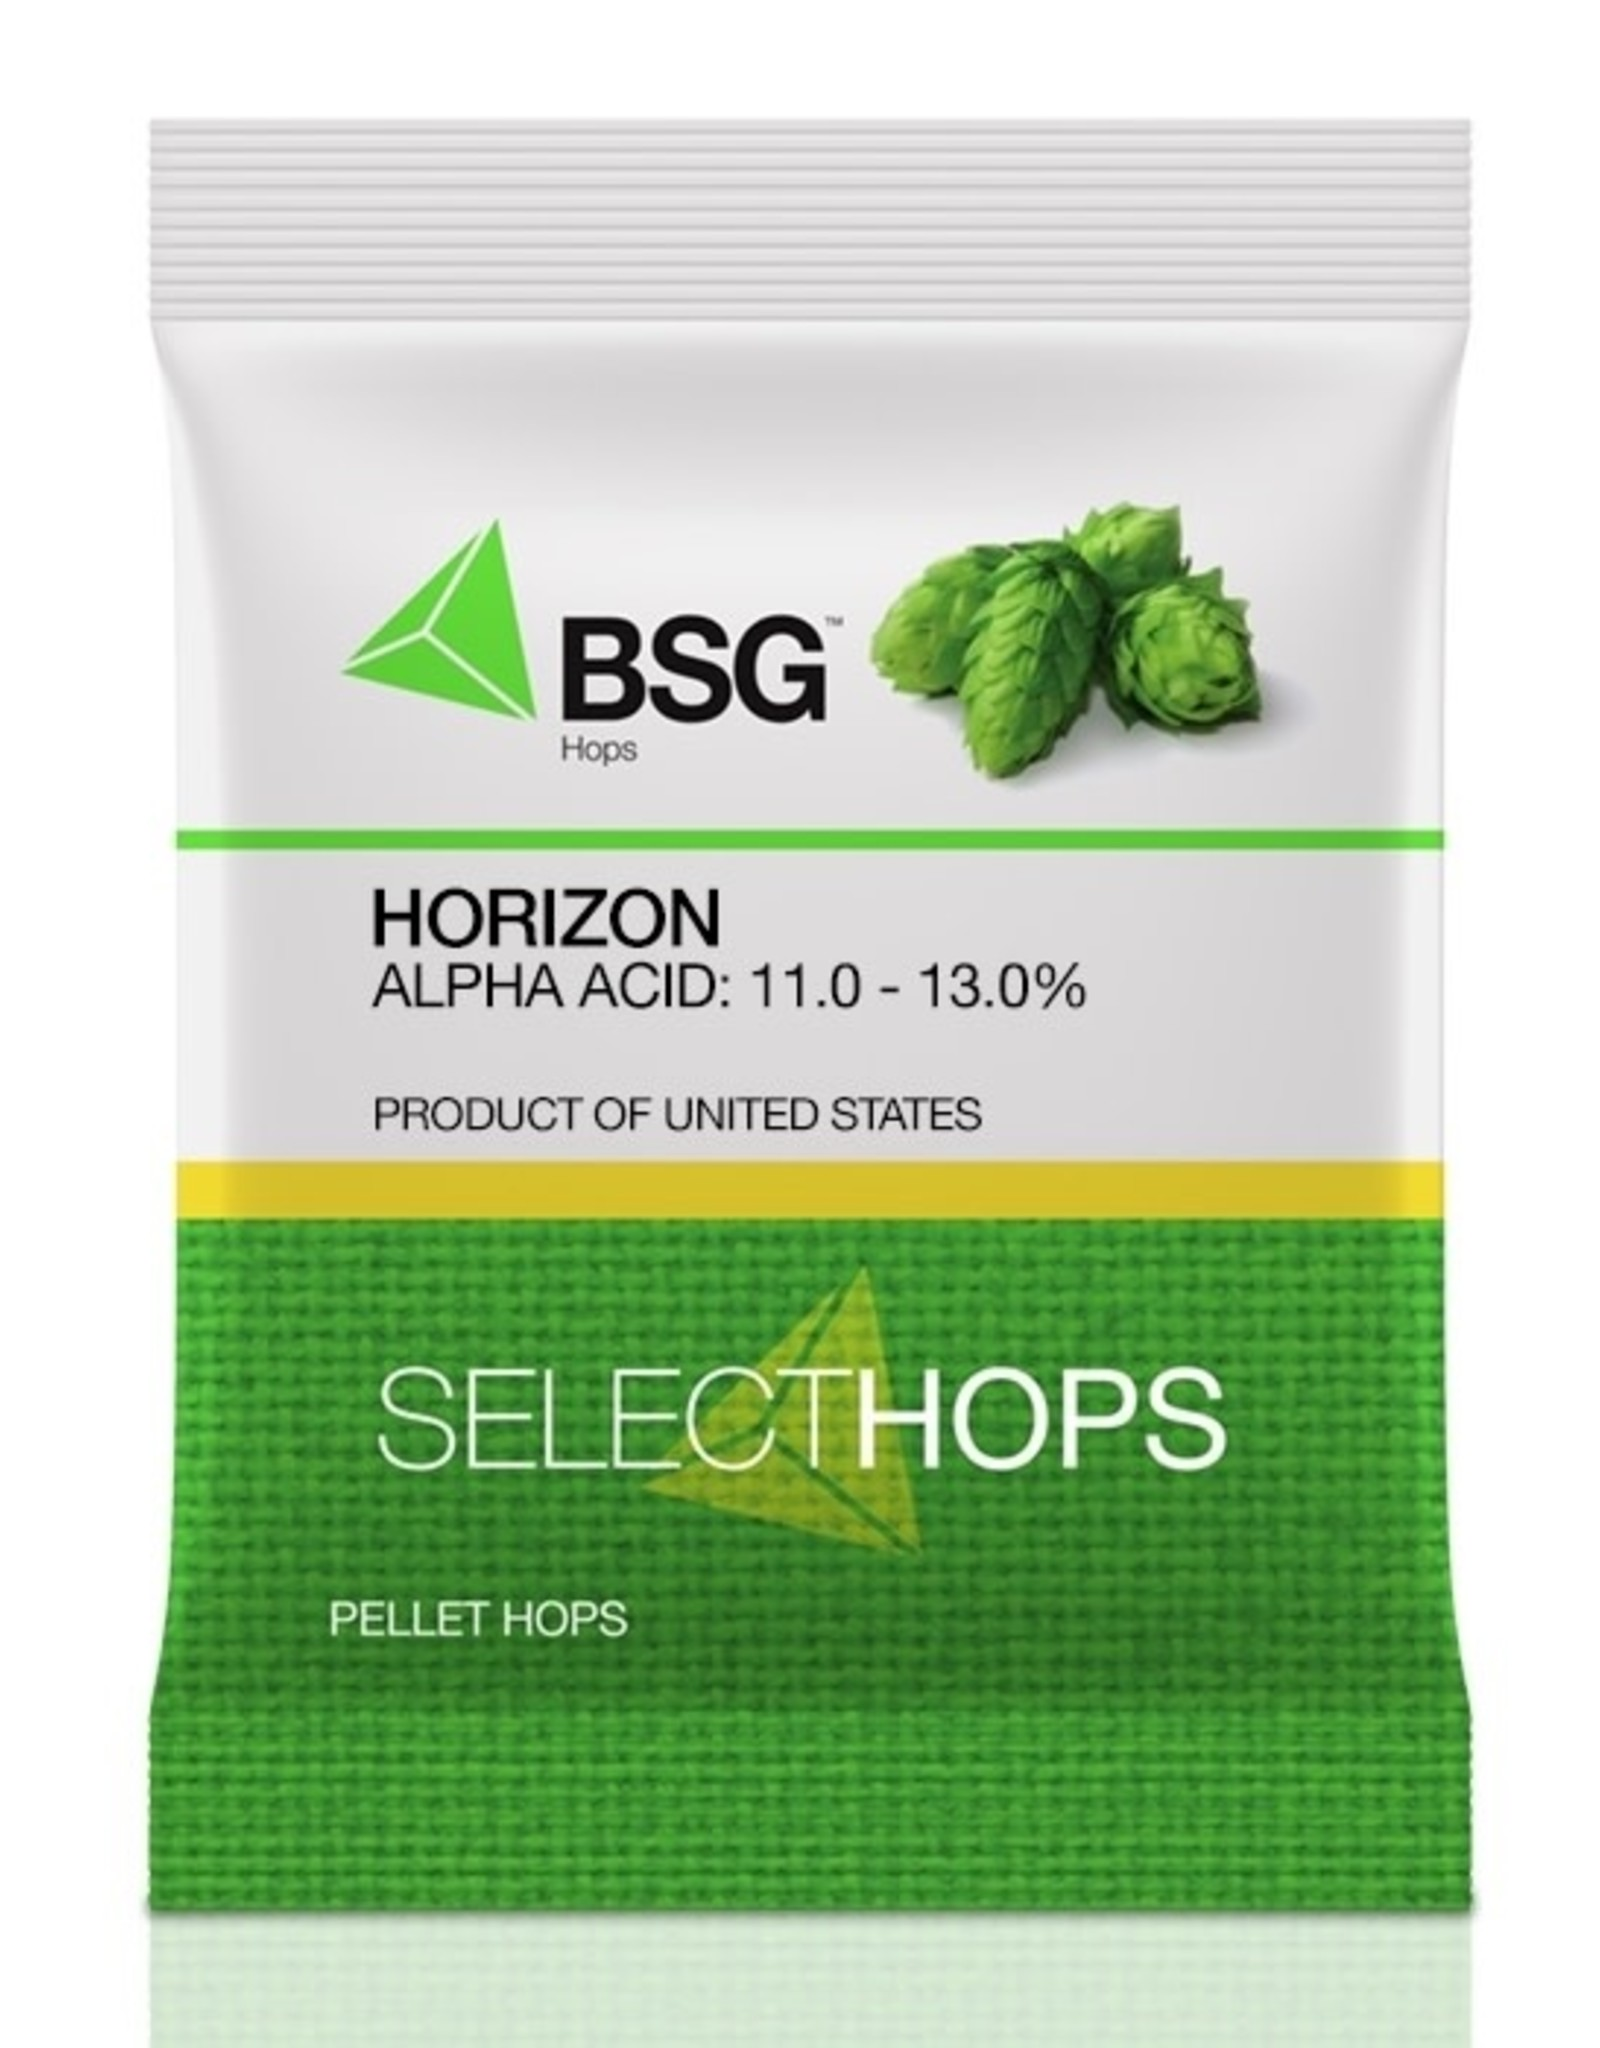 HORIZON HOP PELLETS